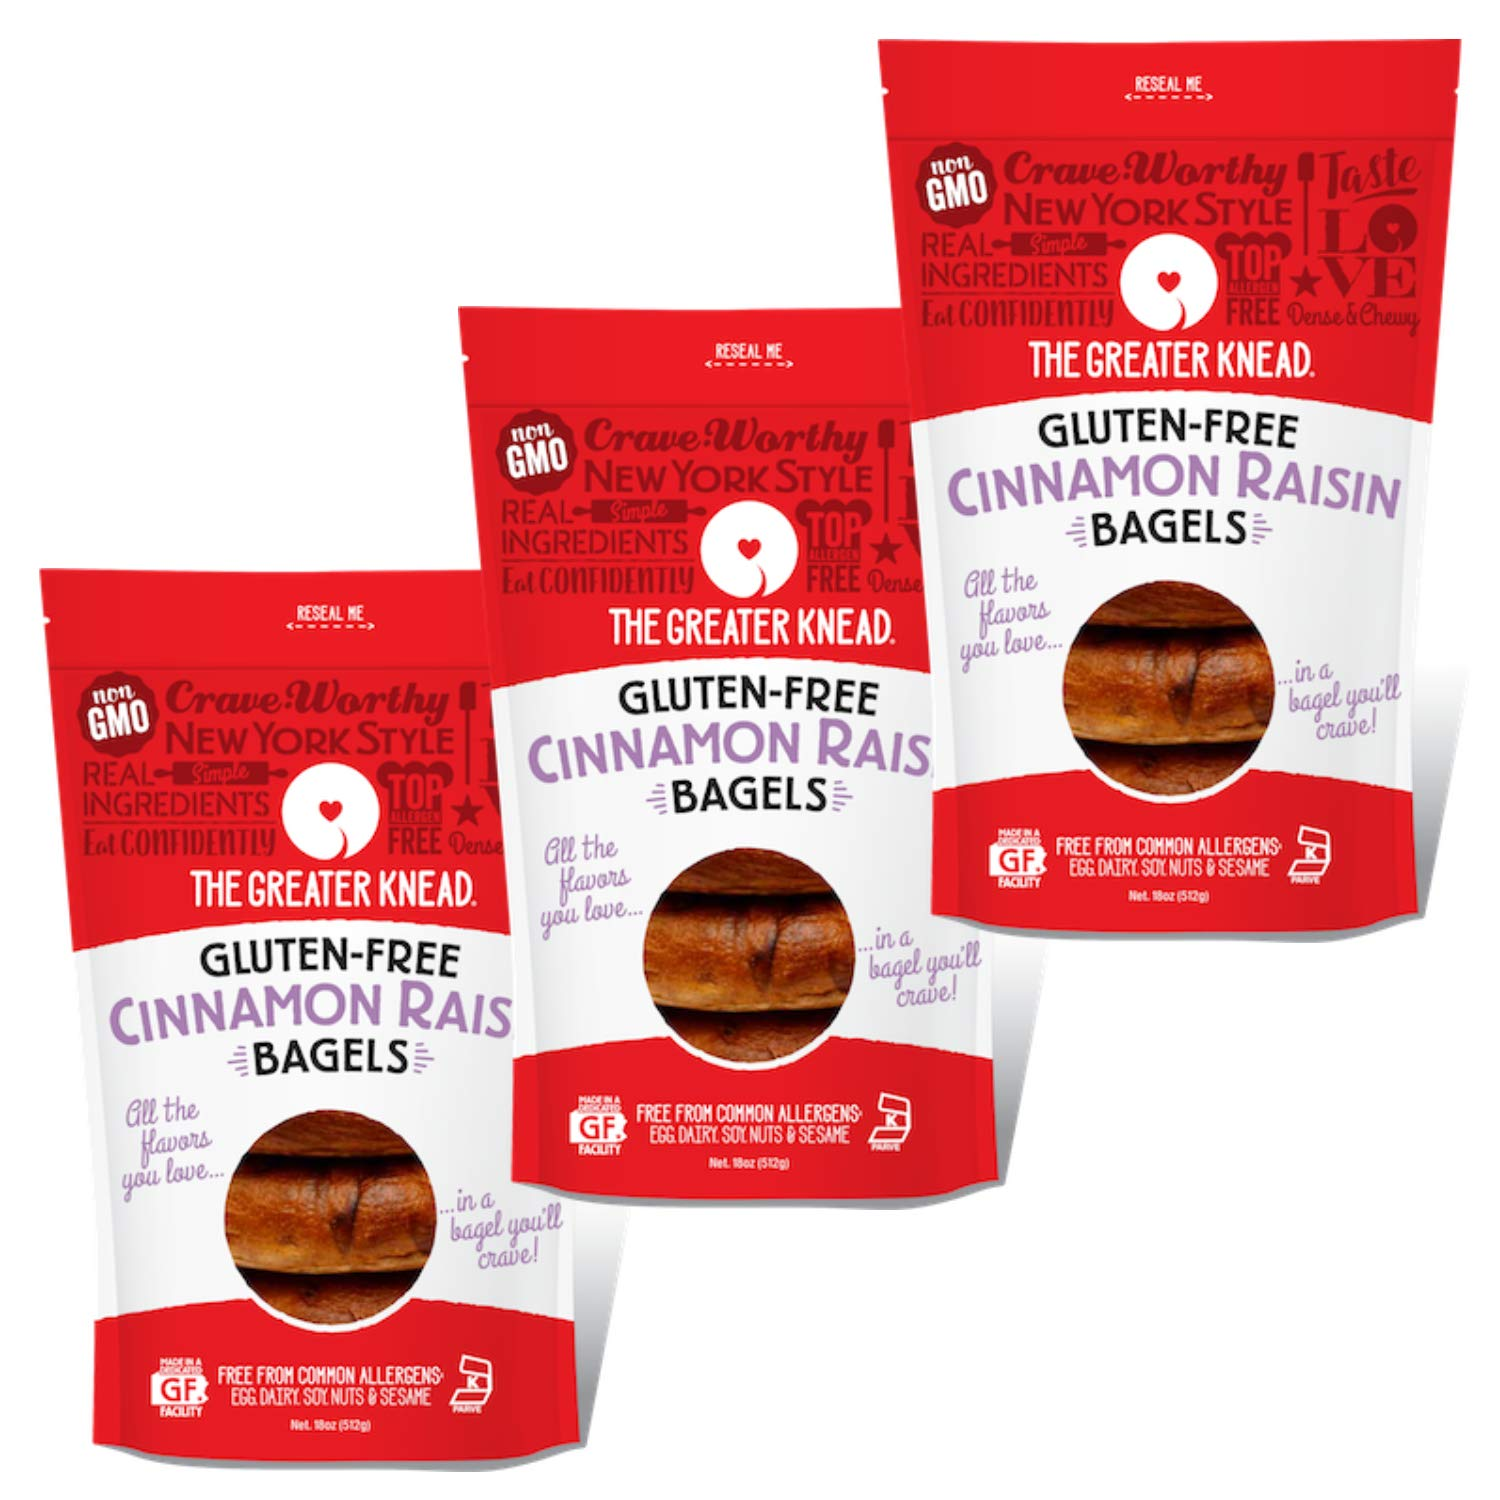 Greater Knead Gluten Free Bagel - Cinnamon Raisin - Vegan, non-GMO, Free of Wheat, Nuts, Soy, Peanuts, Tree Nuts (12 bagels) by The Greater Knead (Image #1)